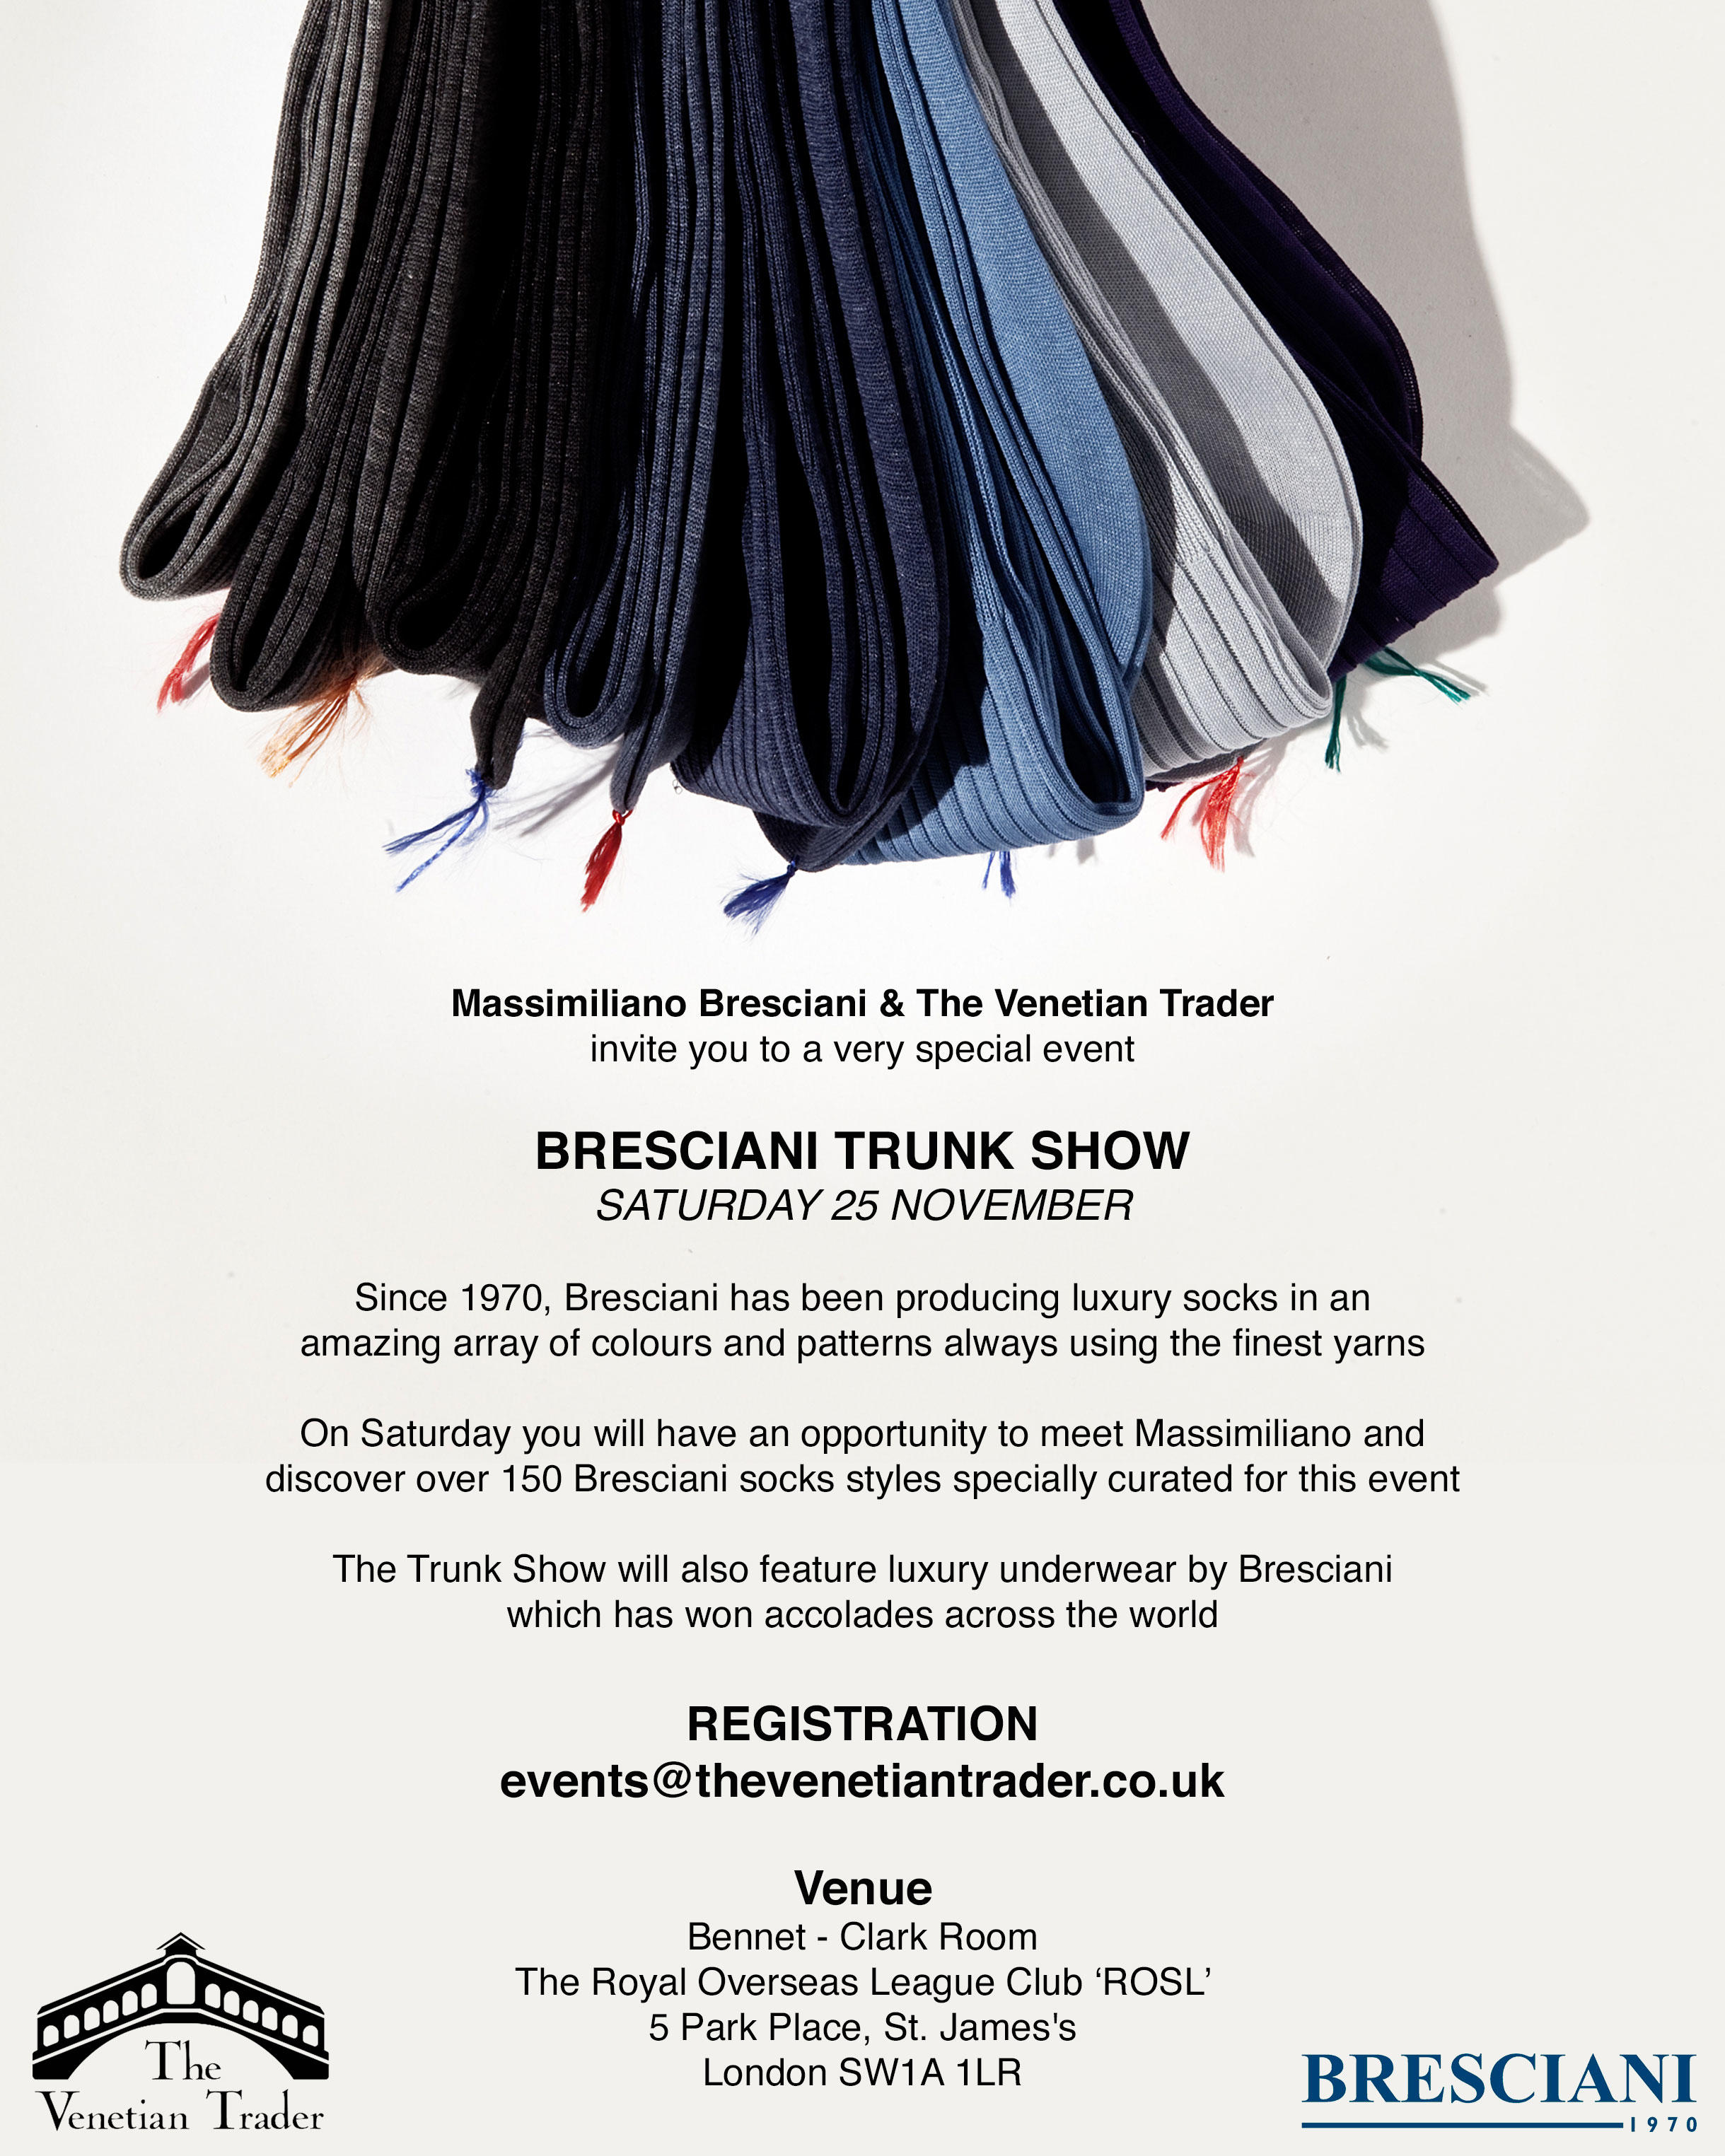 London Events on 25 November 2017 - Socks Popup Trunk Show By Bresciani